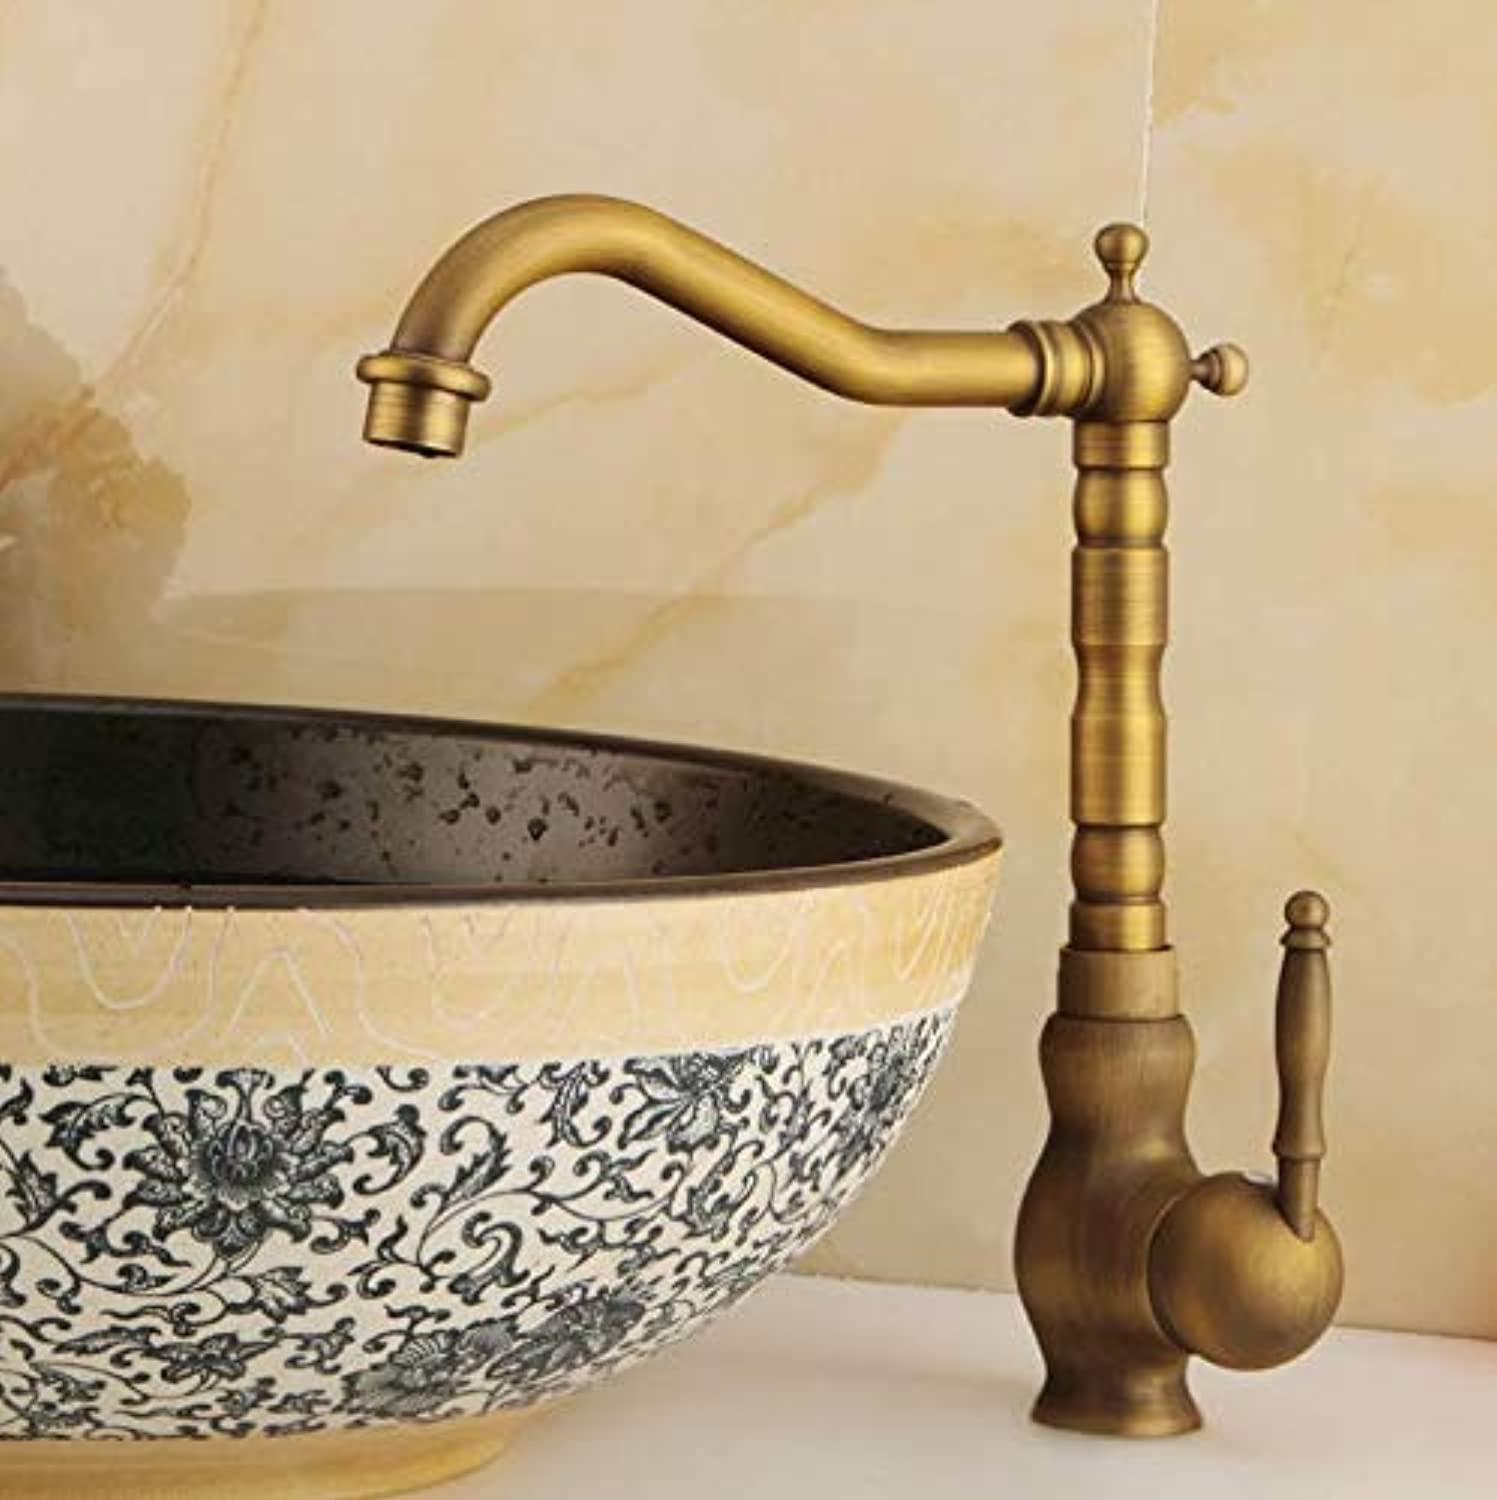 Dwthh Brass Basin Faucet Heightening Bathroom Faucet Hot and Cold Faucets Mixer Ceramic Carved Handle Taps